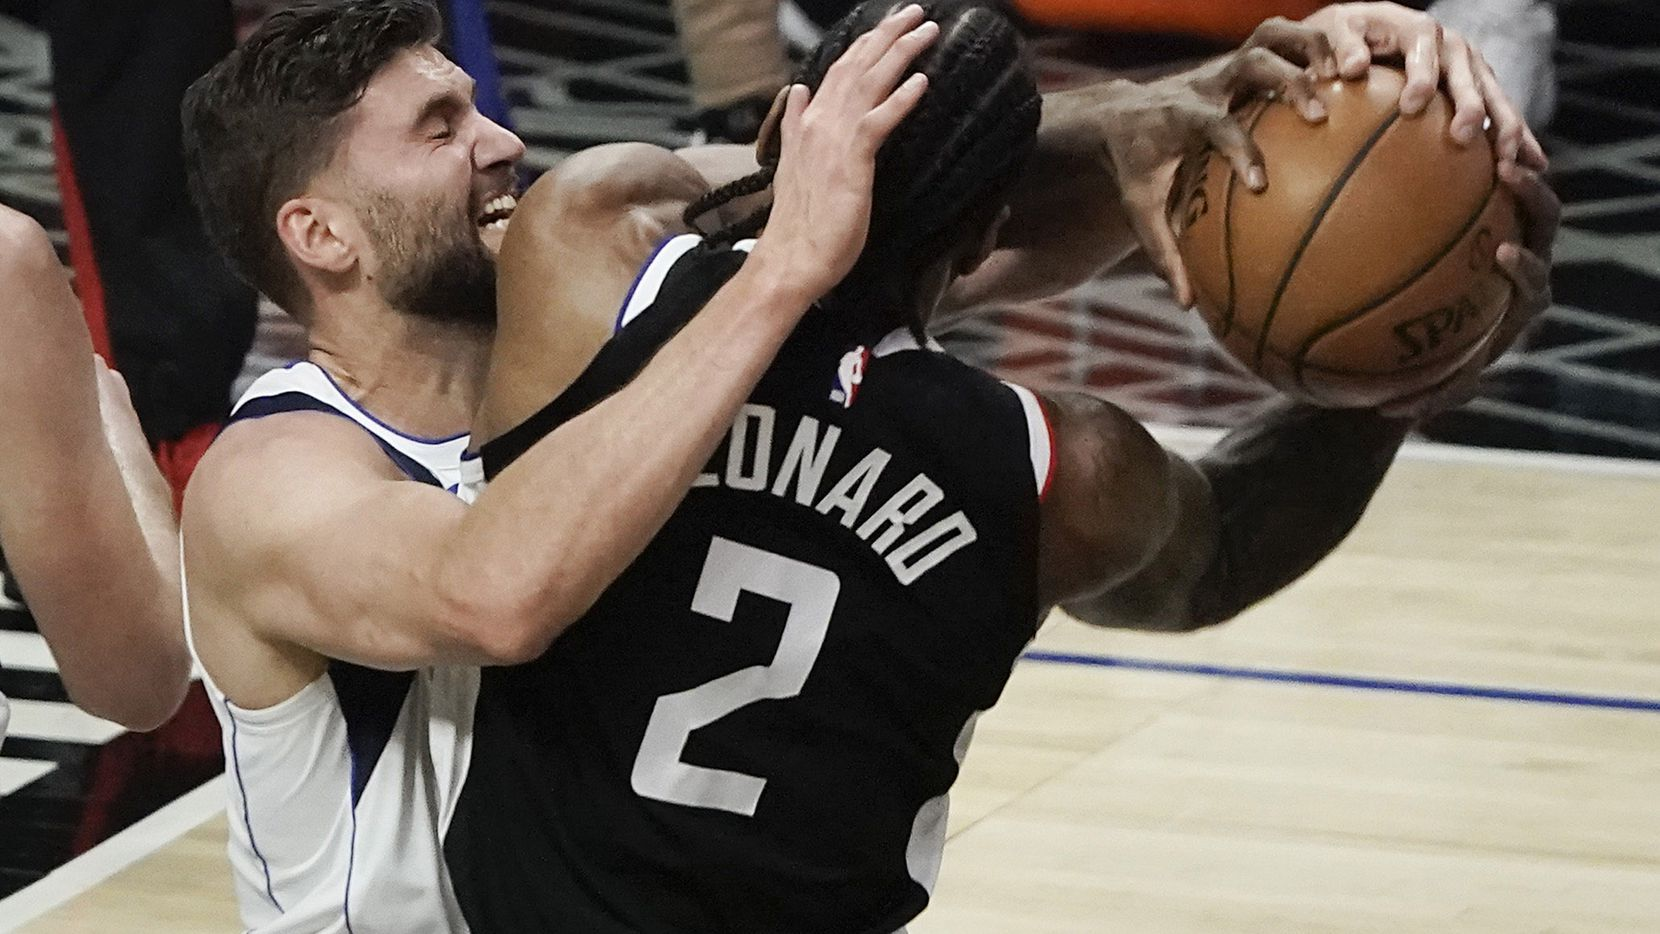 Dallas Mavericks forward Maxi Kleber (42) fights for a rebound with LA Clippers forward Kawhi Leonard (2) during the first half of an NBA playoff basketball game at Staples Center on Saturday, May 22, 2021, in Los Angeles.